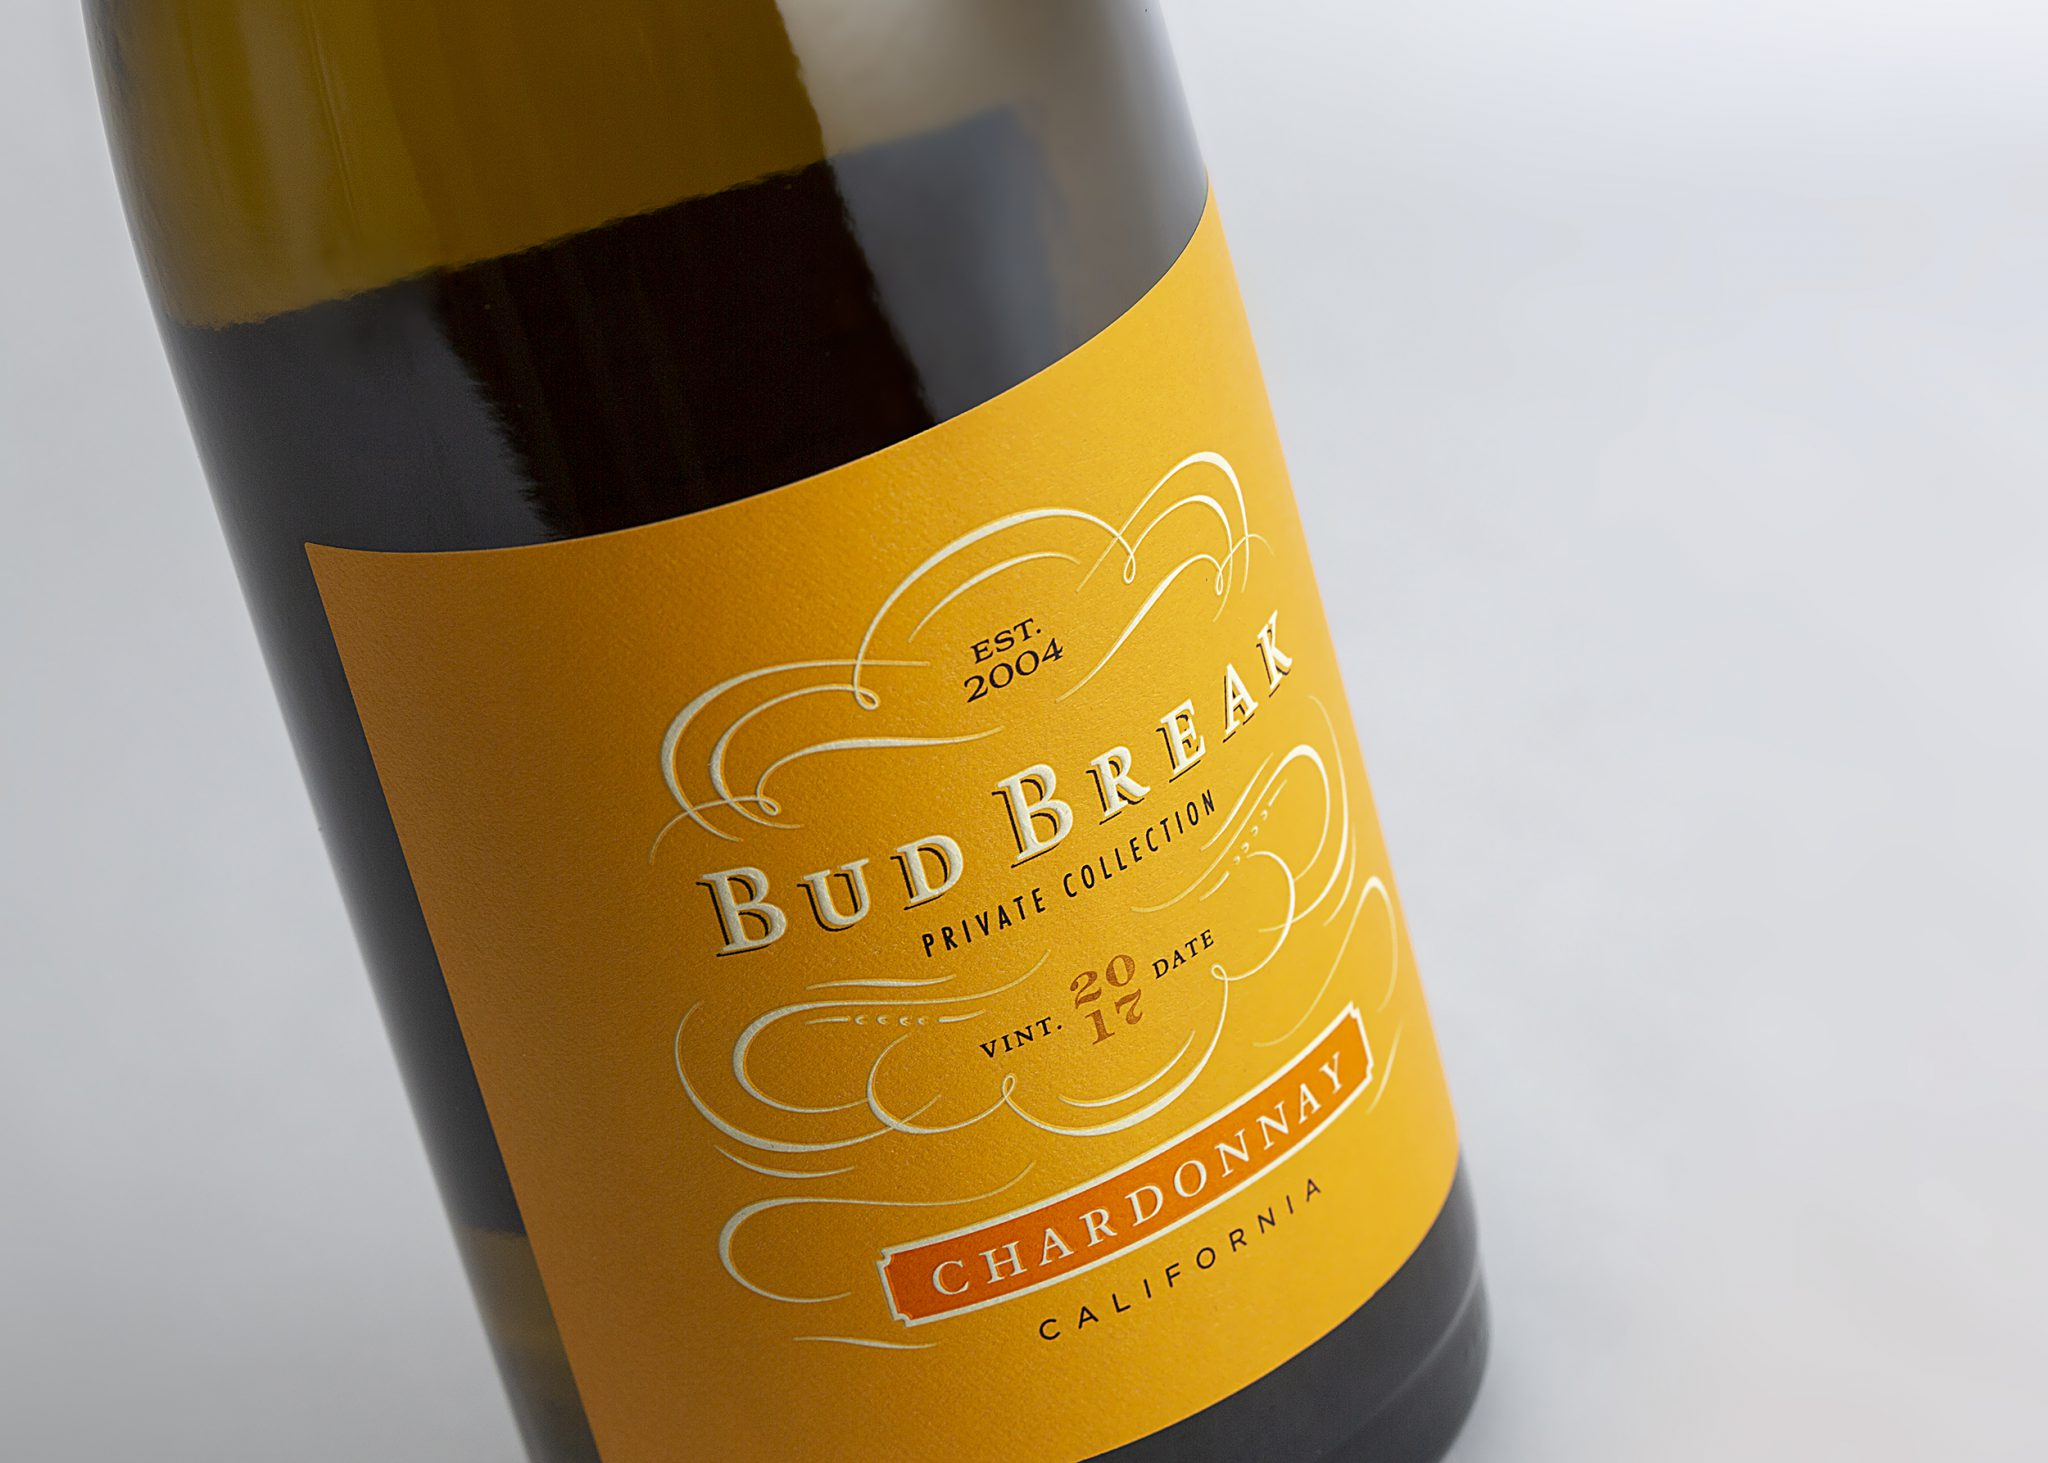 Budbreak Wine label design by Vertical in Santa Rosa, CA